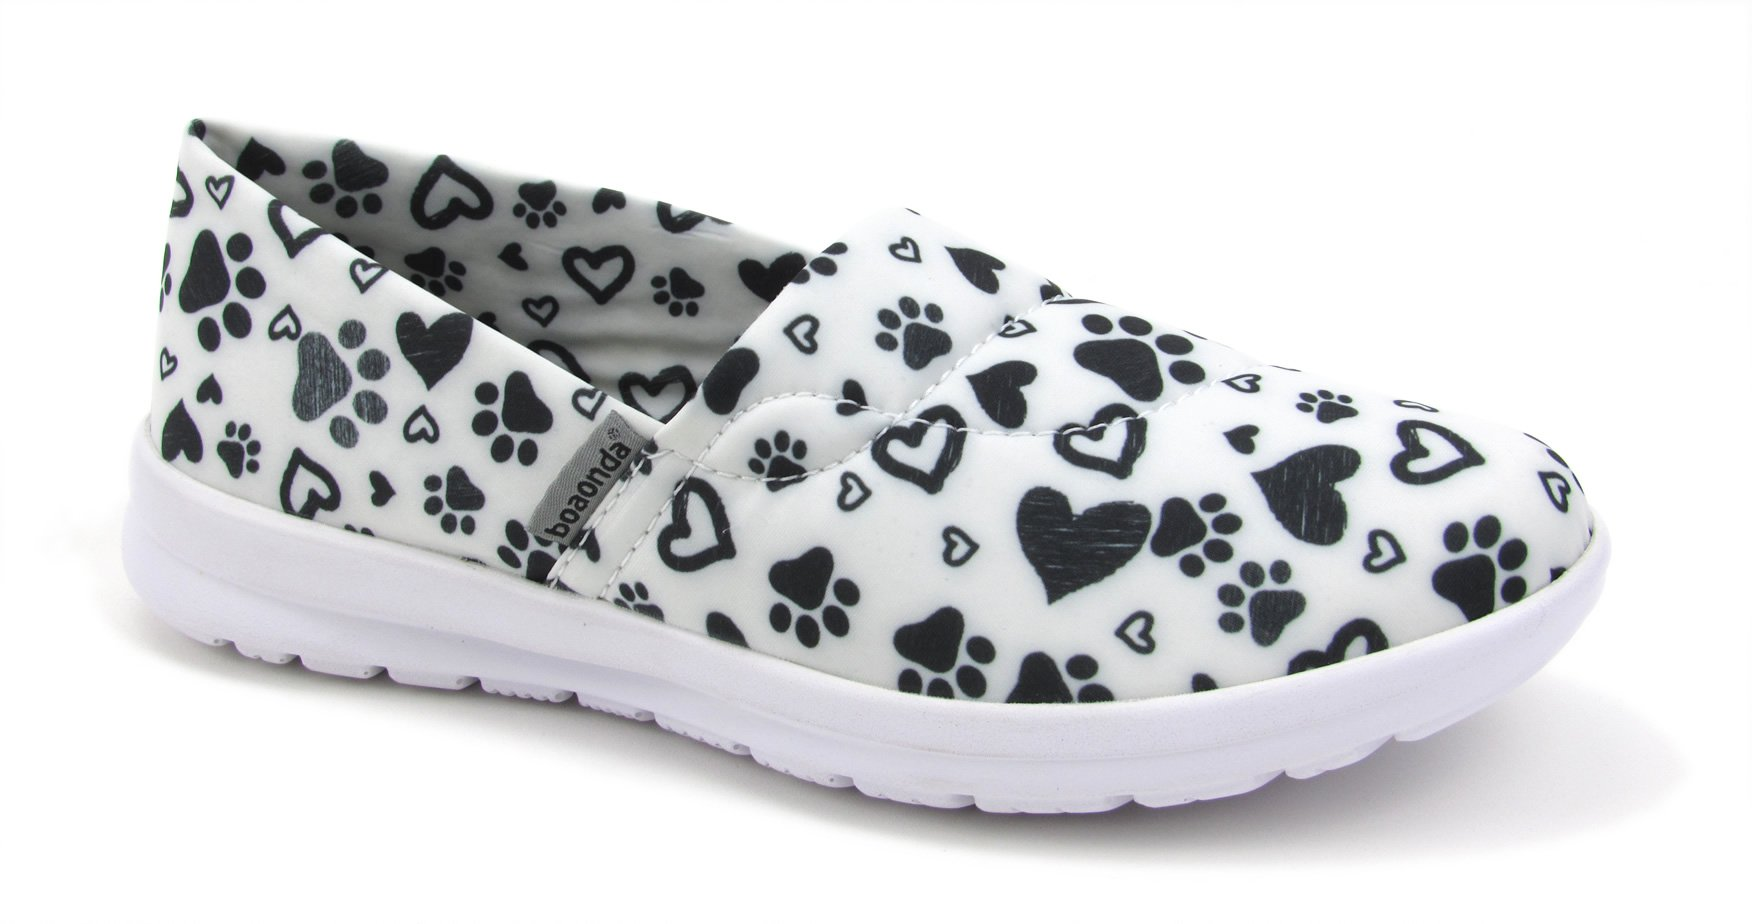 Ocean Women's Cute Memory Foam Nursing Shoes - Printed - Florence (10, Paws and Hearts W/B)